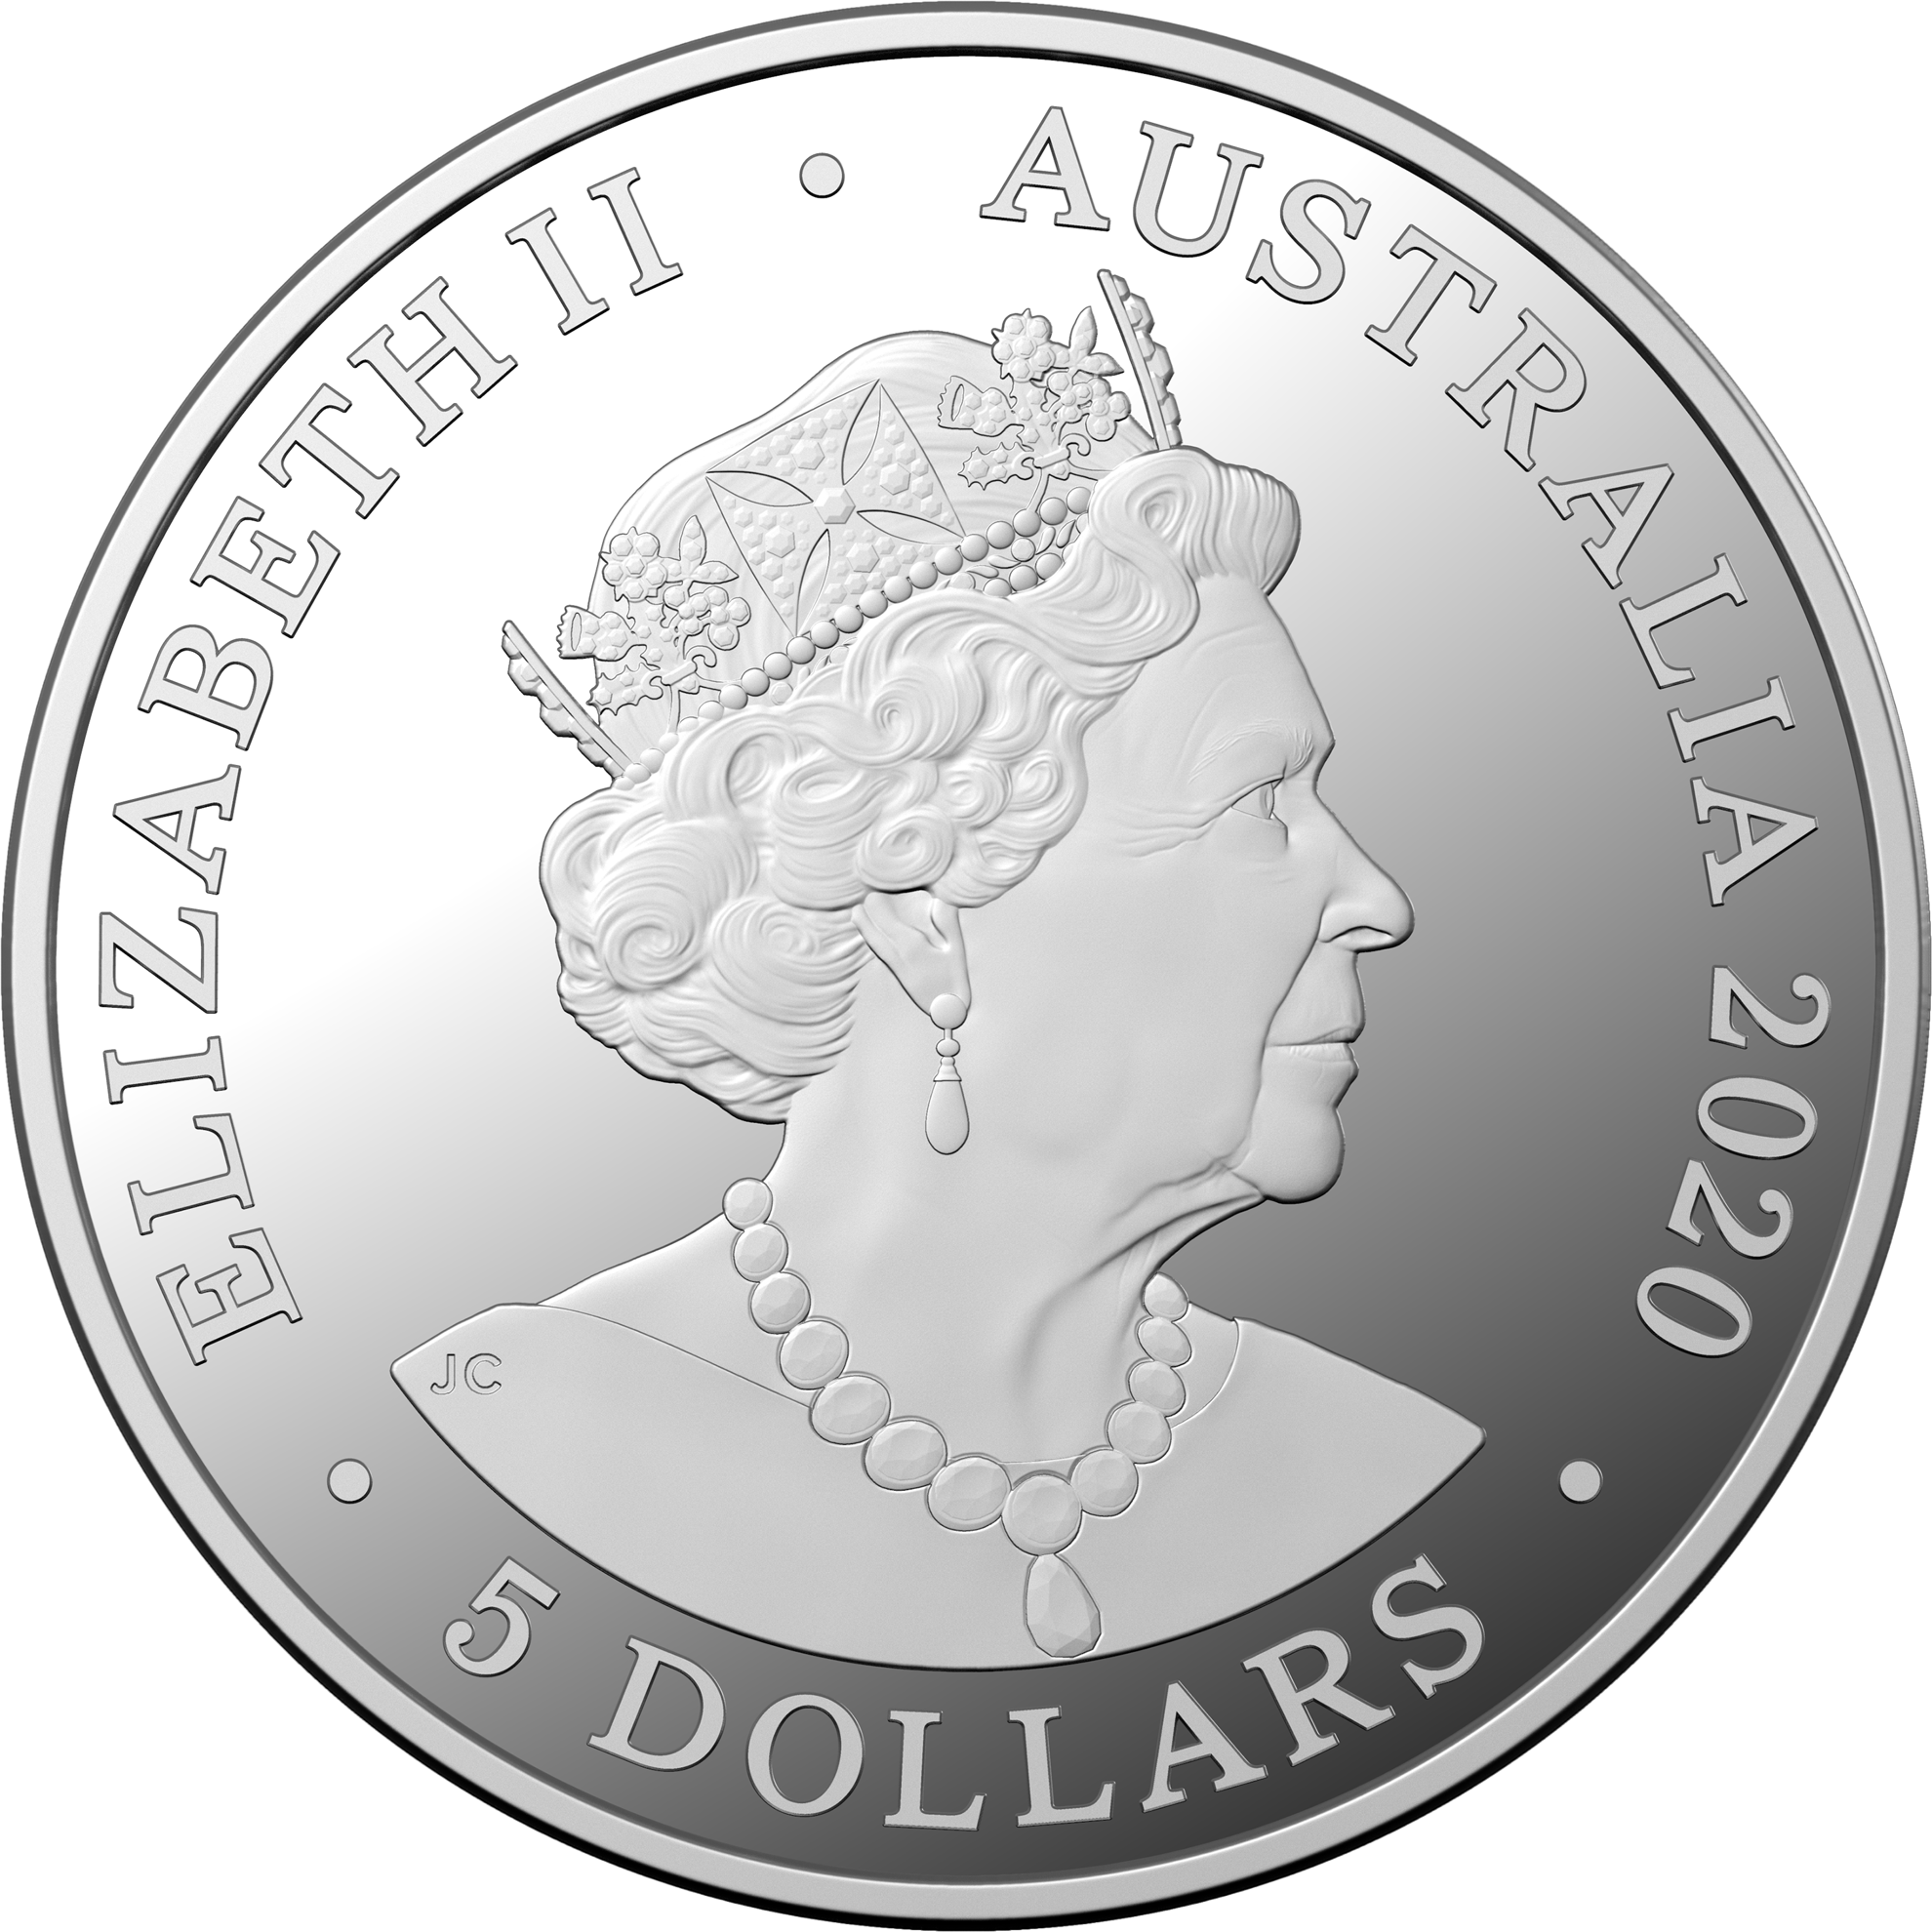 Australia celebrates end of second world war with a 5 AUD silver coin